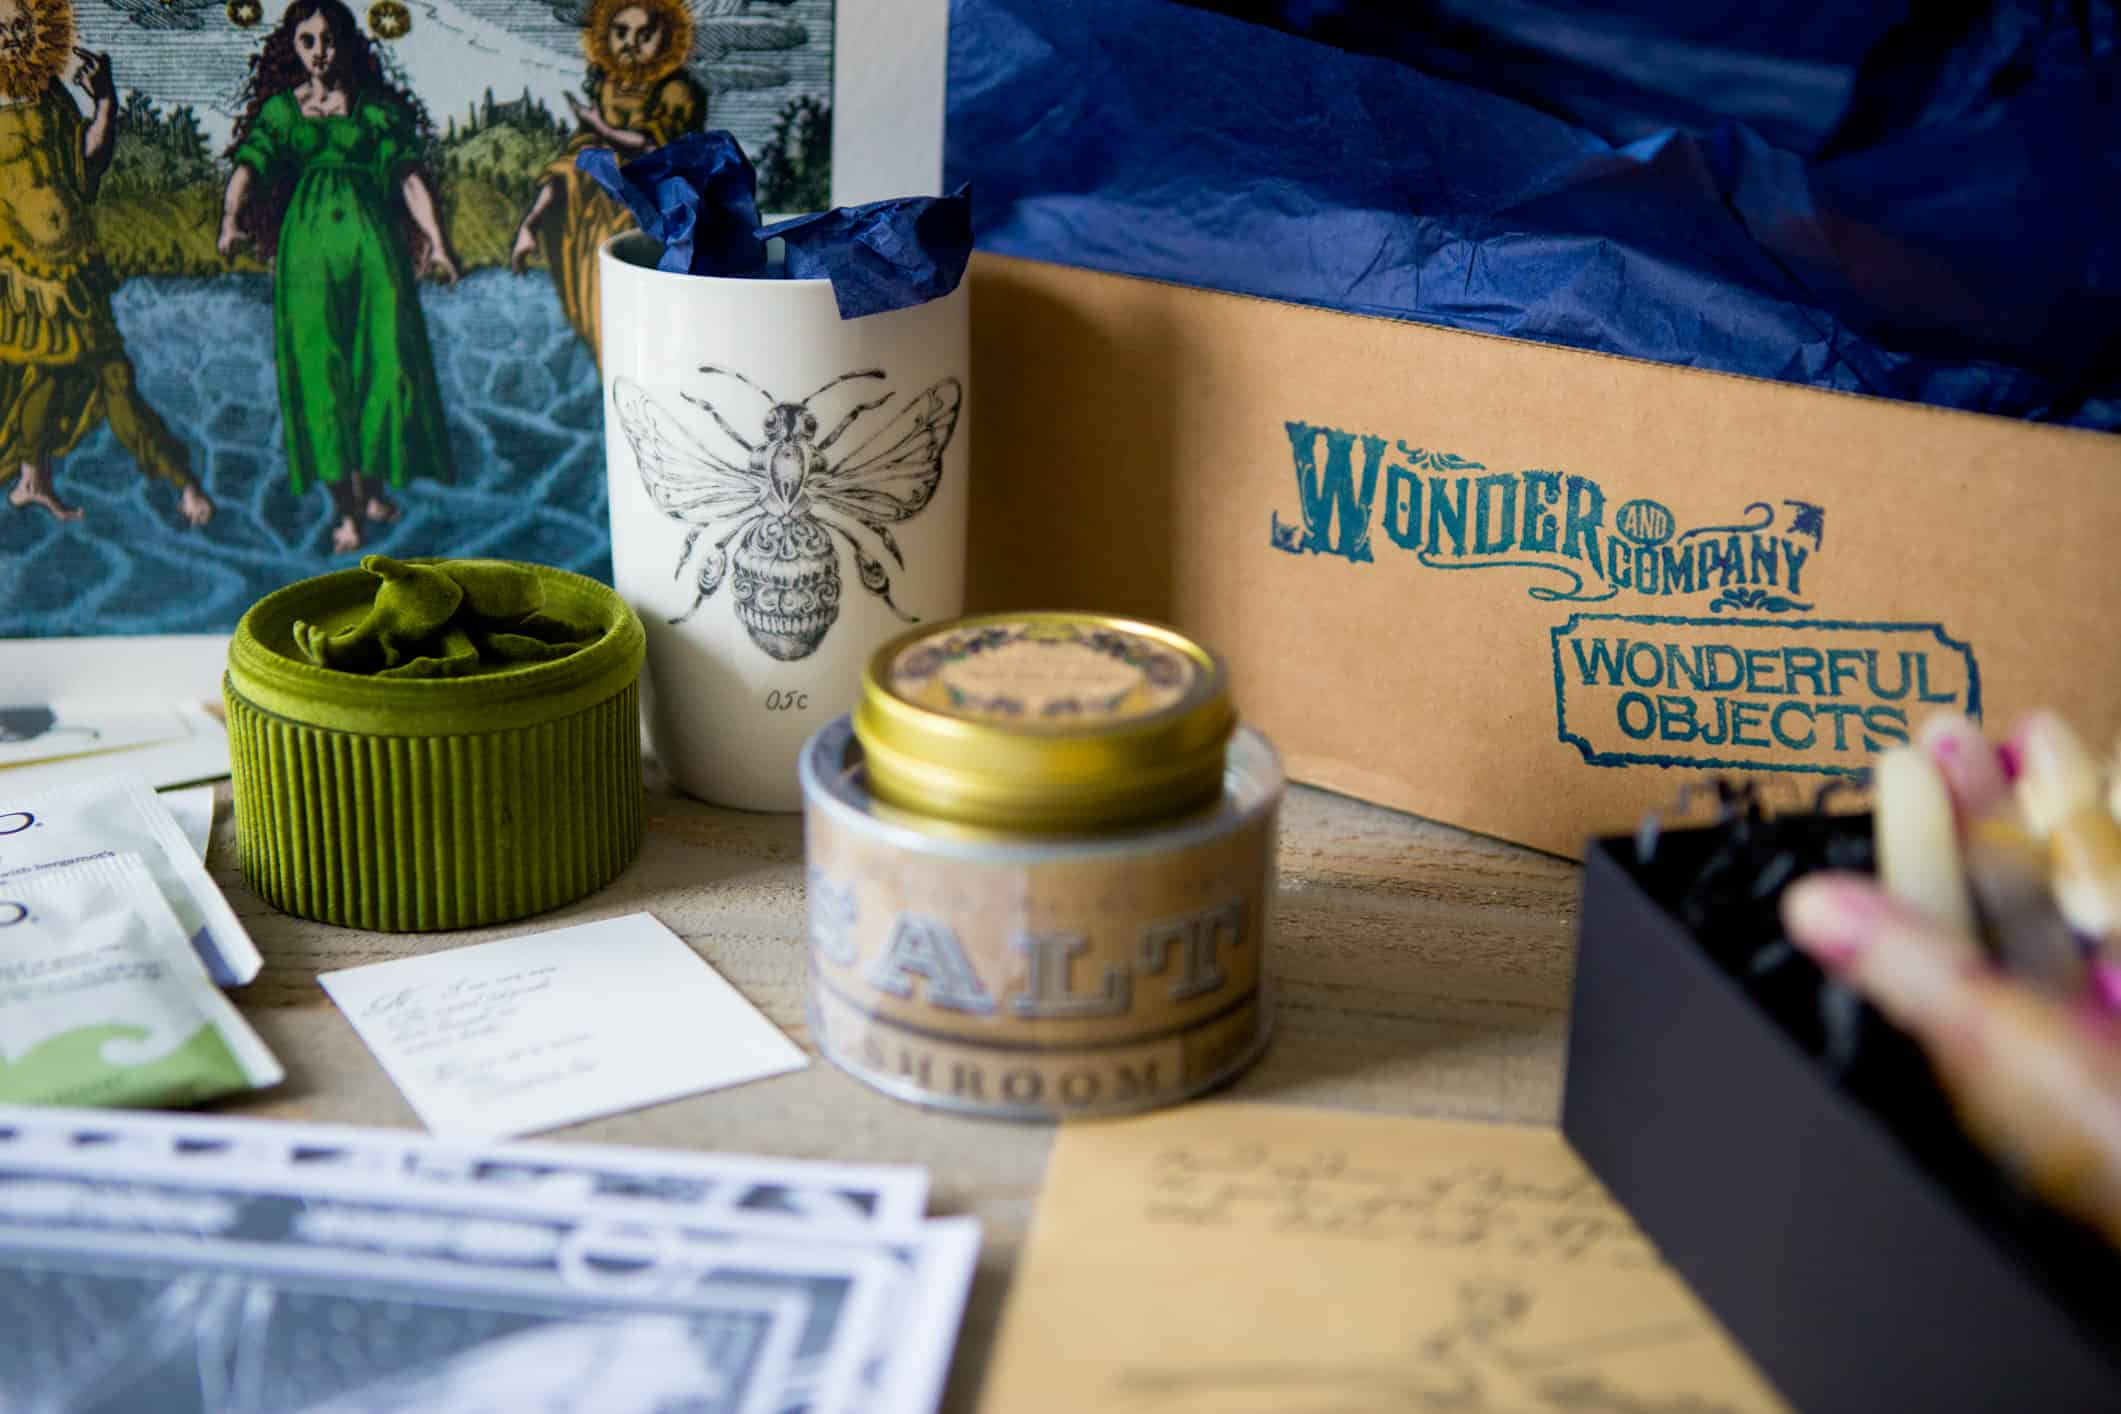 Wonderful Objects by Wonder & Co Fall 2018 Spoiler + Coupon!